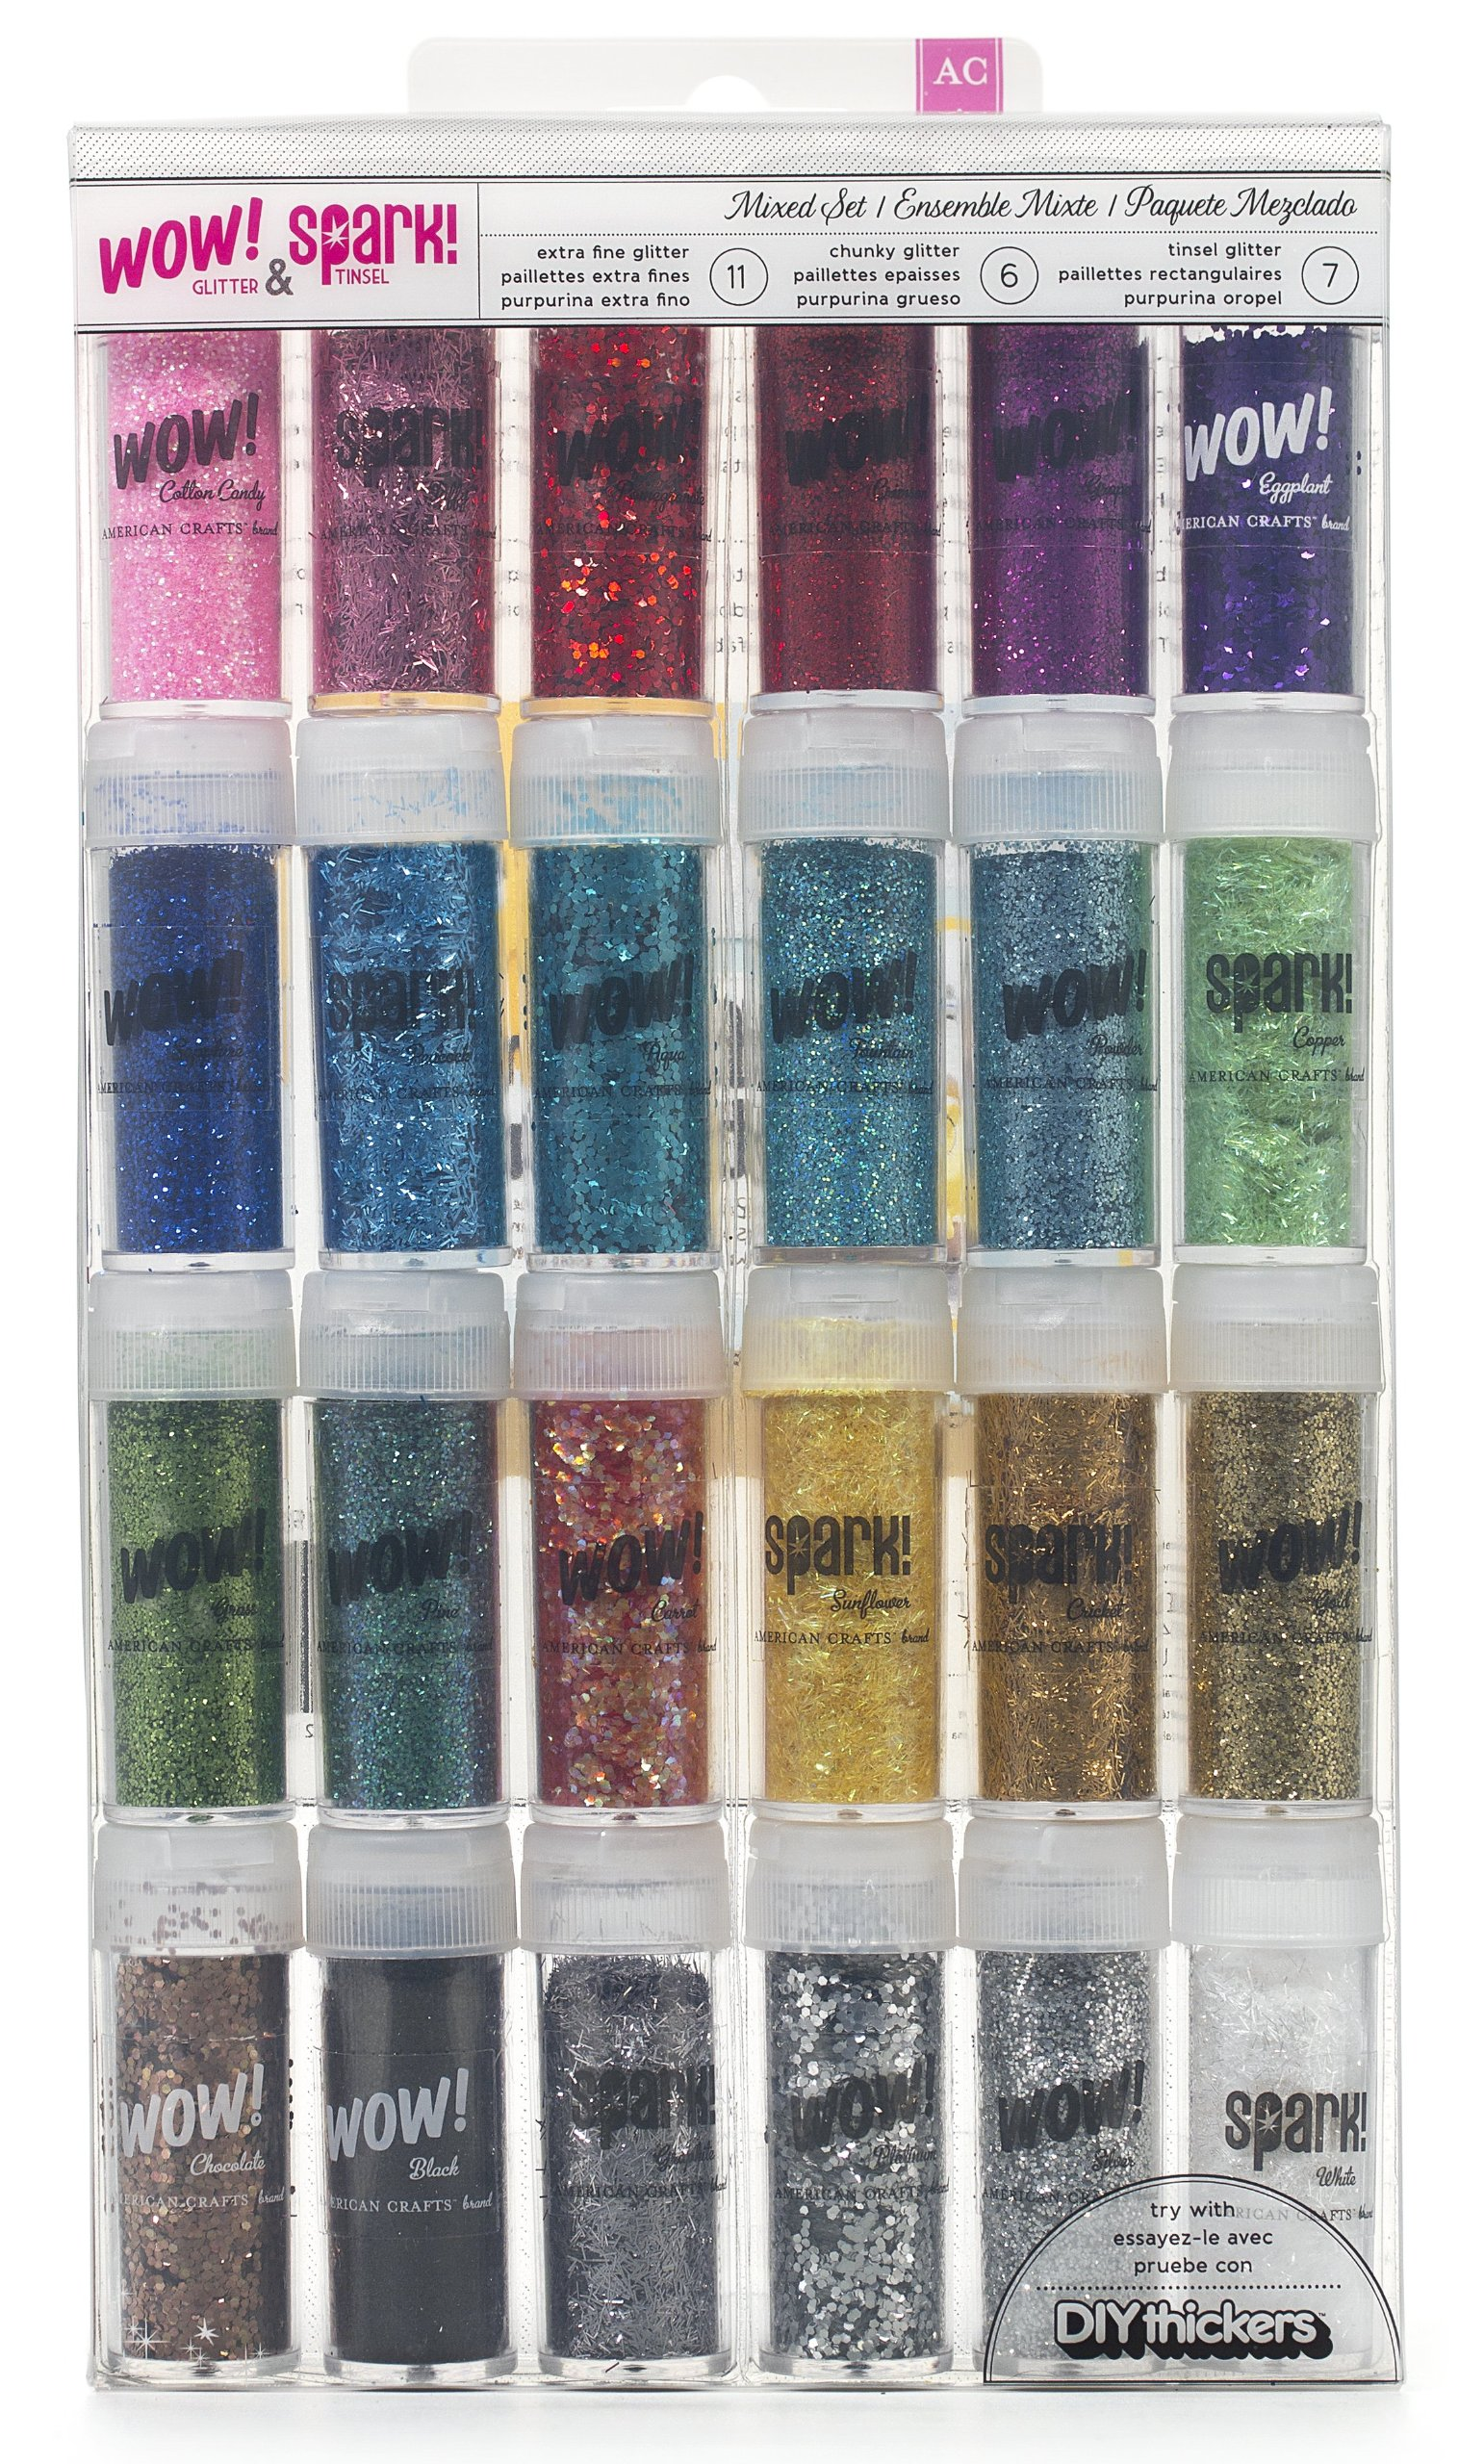 amazon.com - Wow! & Spark! Mixed Glitter Pack by American Crafts | 24-pack | Includes 11 bottles extra fine glitter, 6 bottles chunky glitter and 7 bottles tinsel glitter in various colors